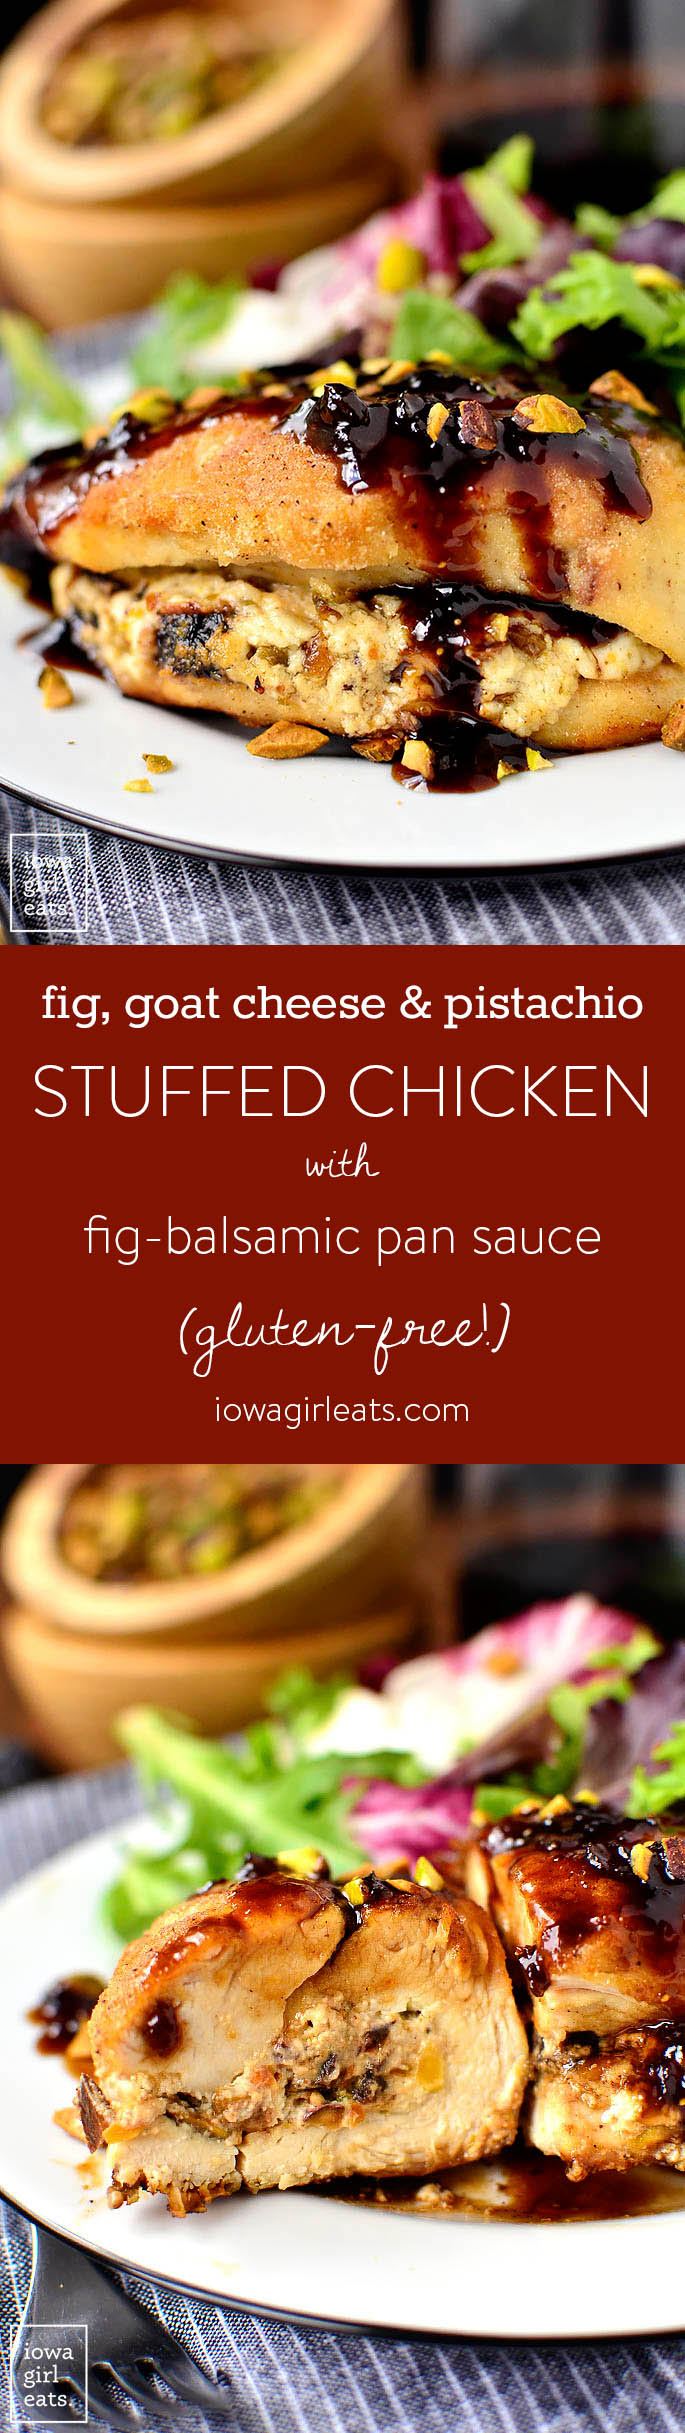 Fig, Goat Cheese and Pistachio Stuffed Chicken with Fig-Balsamic Pan Sauce is an easy yet elegant, gluten-free dinner recipe made in one skillet and in under 30 minutes! | iowagirleats.com